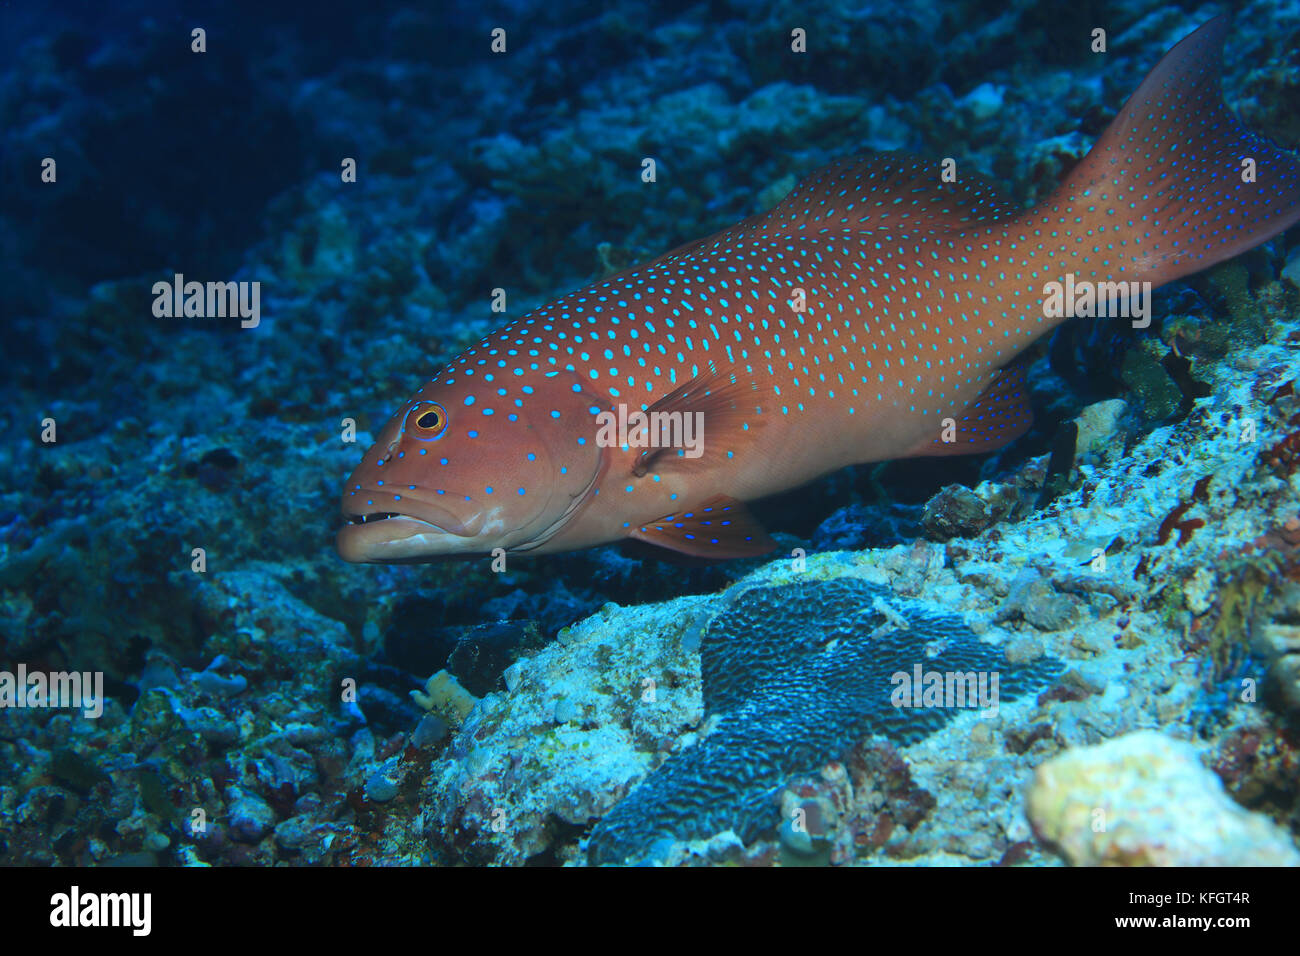 Roving coralgrouper fish (Plectropomus pessuliferus) underwater in the indian ocean - Stock Image